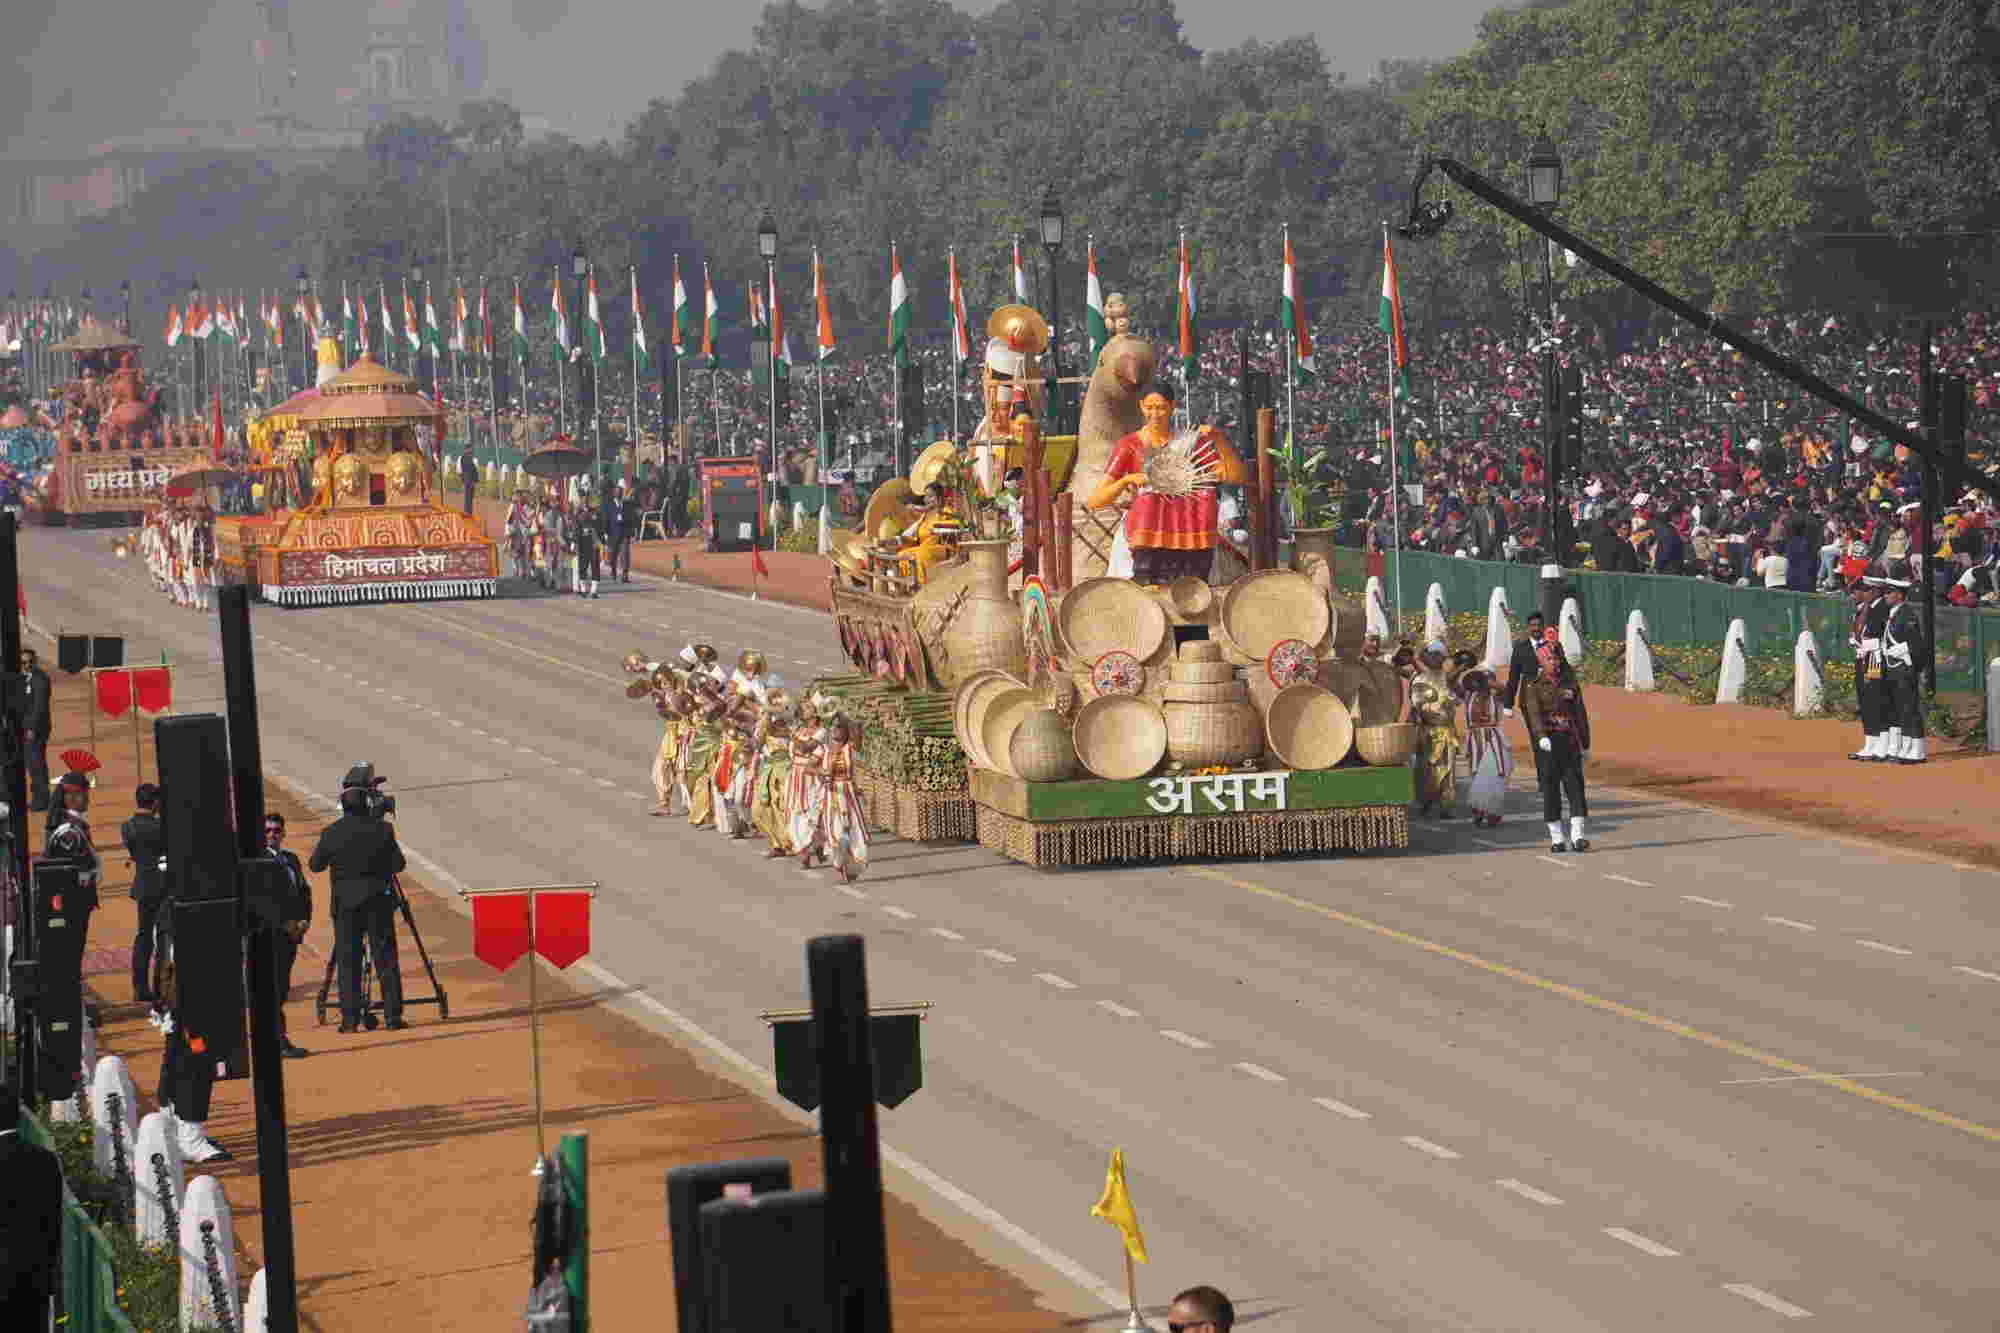 The famous Kaziranga National park and famed Rhino would also be a part of the parade